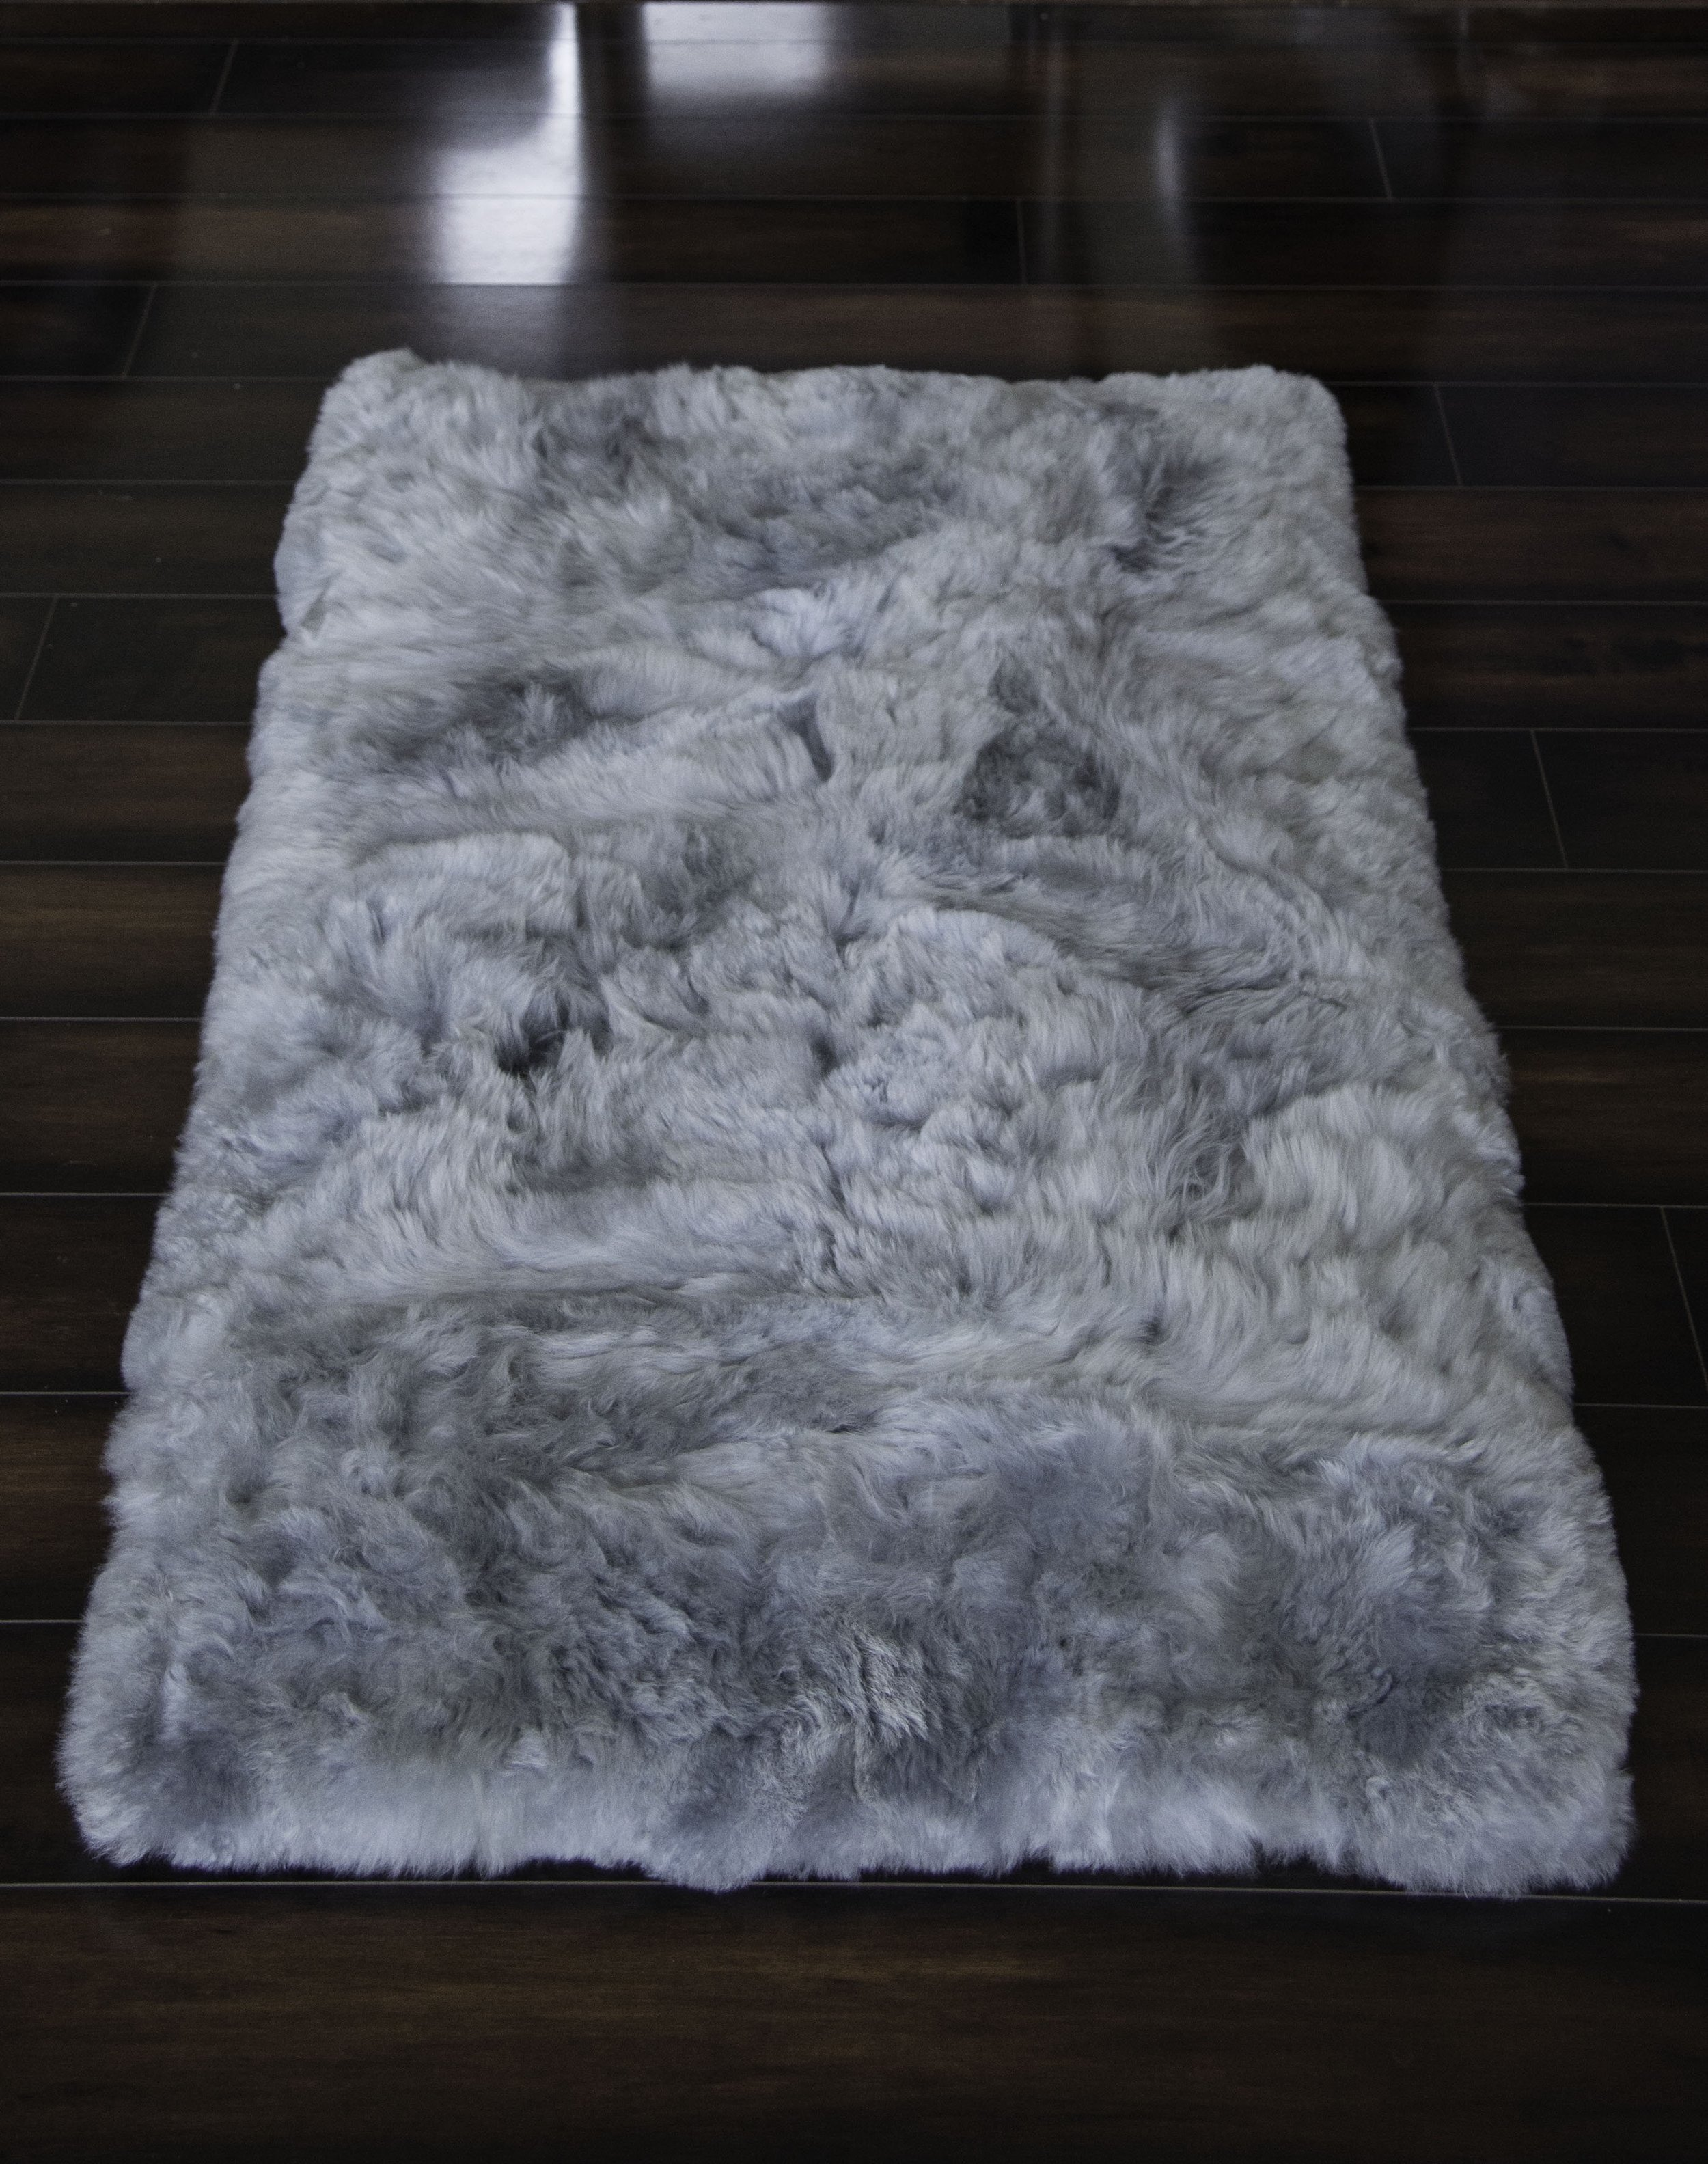 Hua Alpaca rug, fur rug in Light Gray